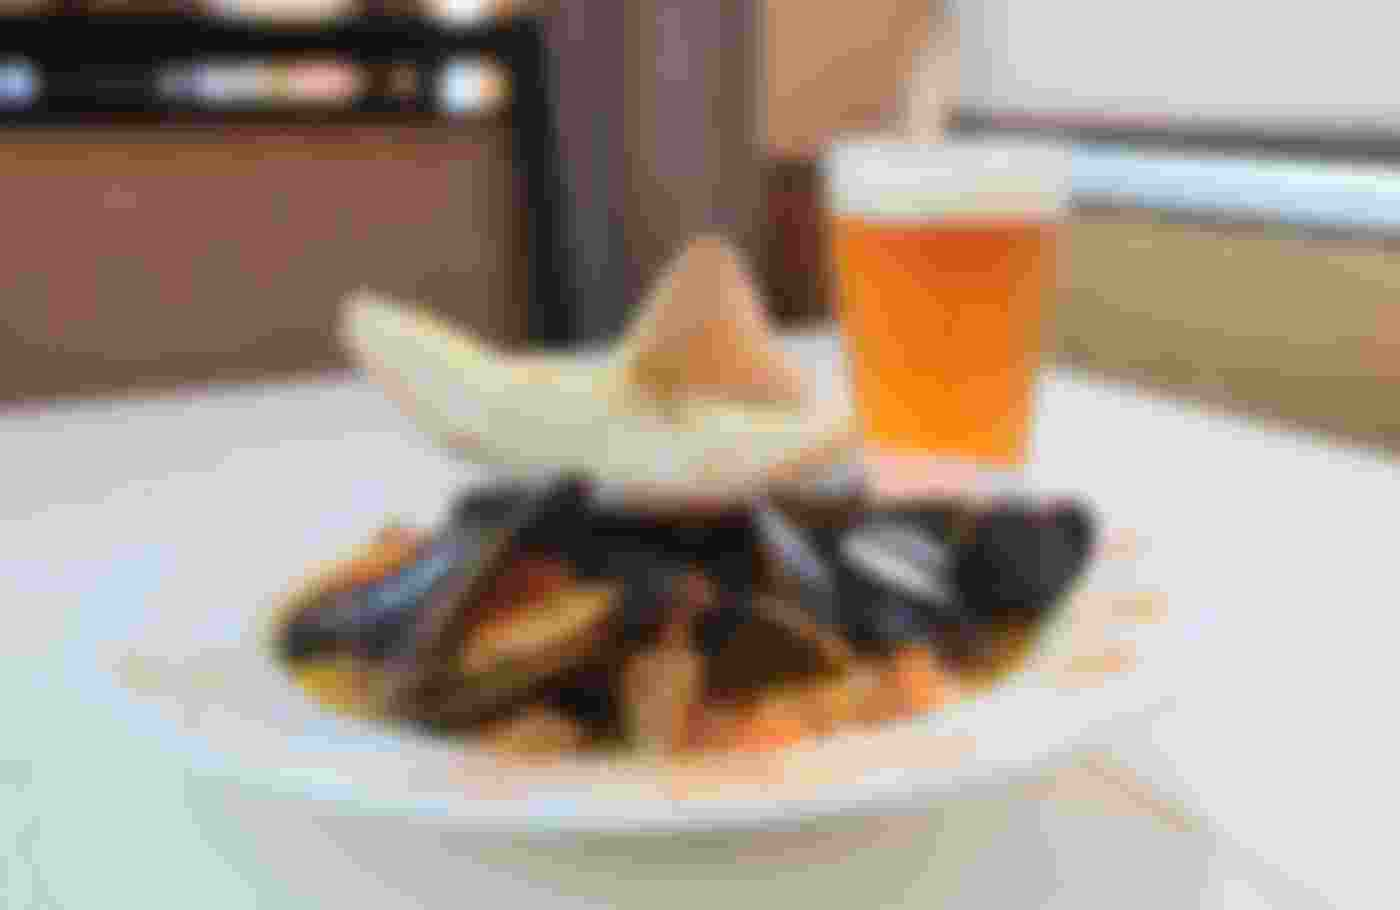 mussels and glass of beer